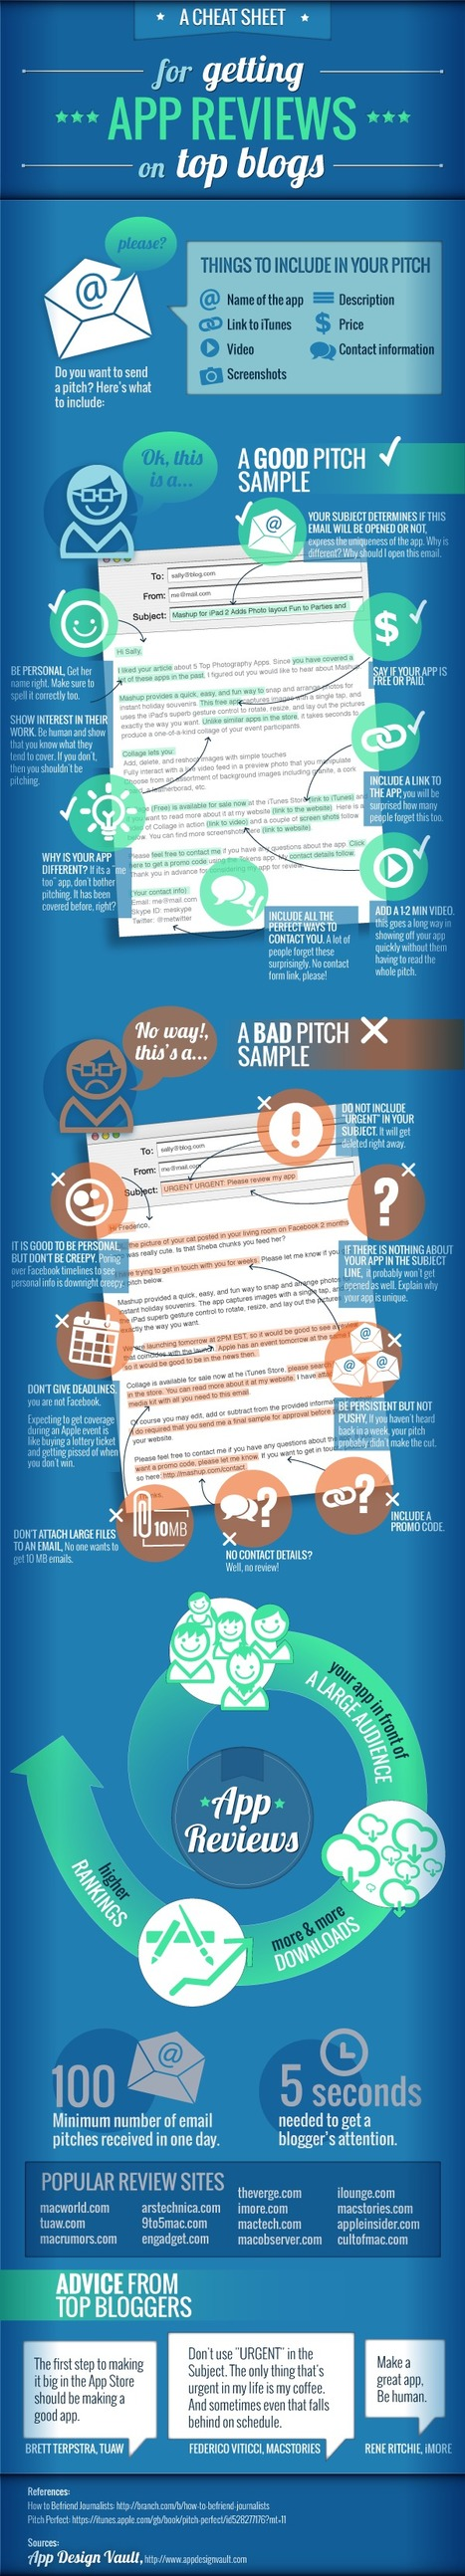 Best Cheat Sheet For Getting App Reviews [Infographic] | MarketingHits | Scoop.it